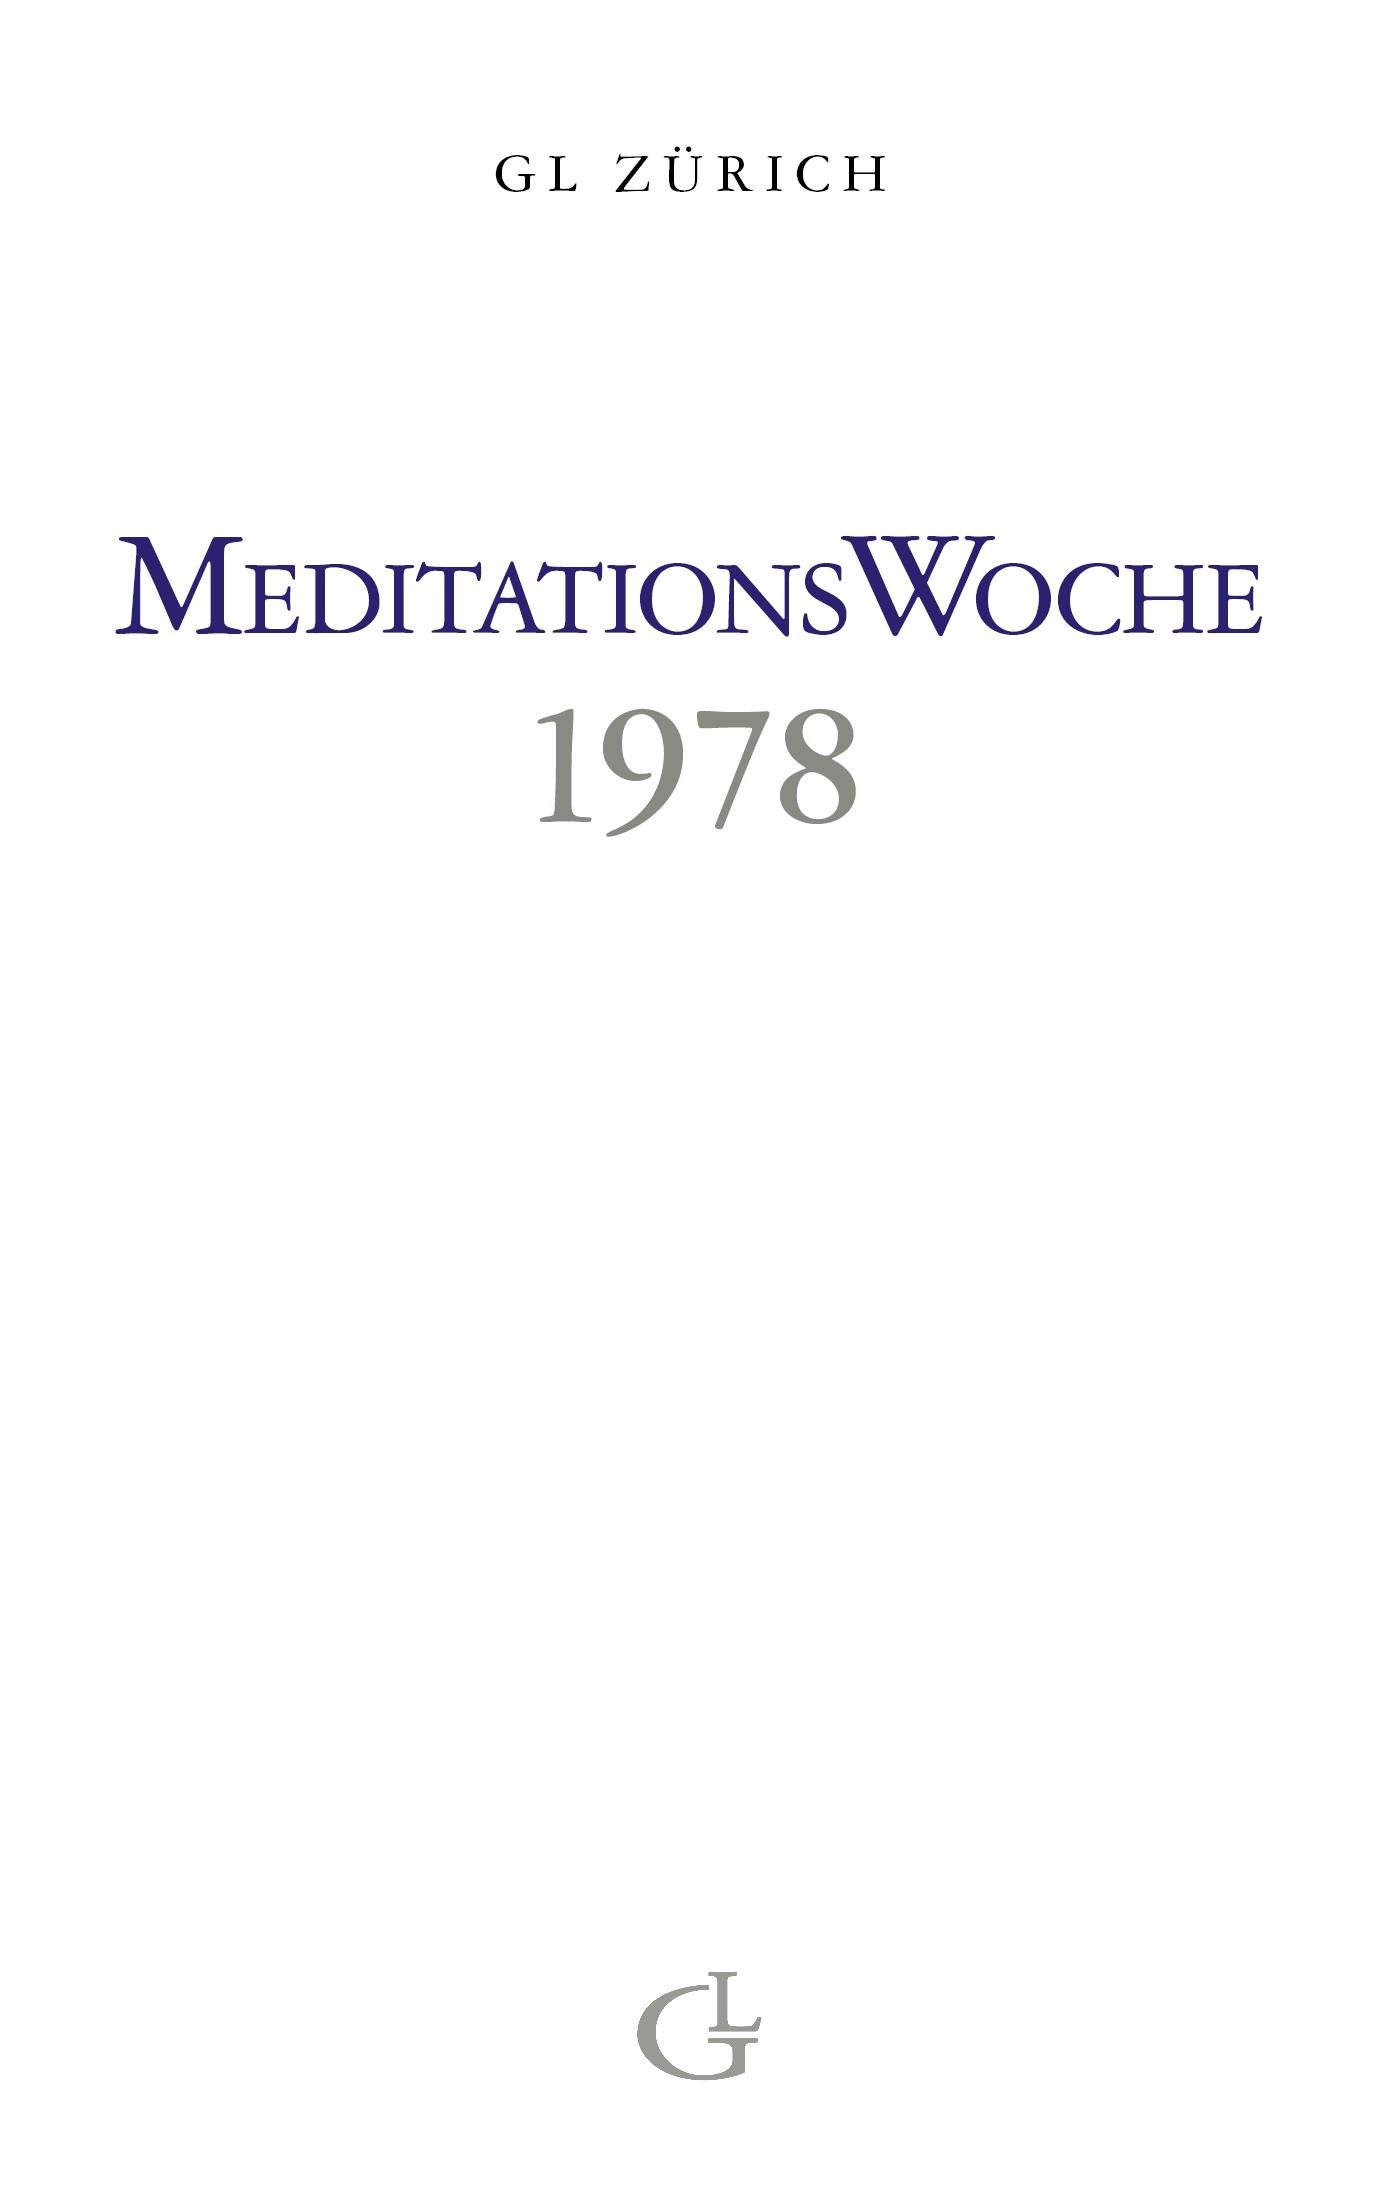 Cover des Buches Meditationswoche 1978 von Medium Beatrice Brunner